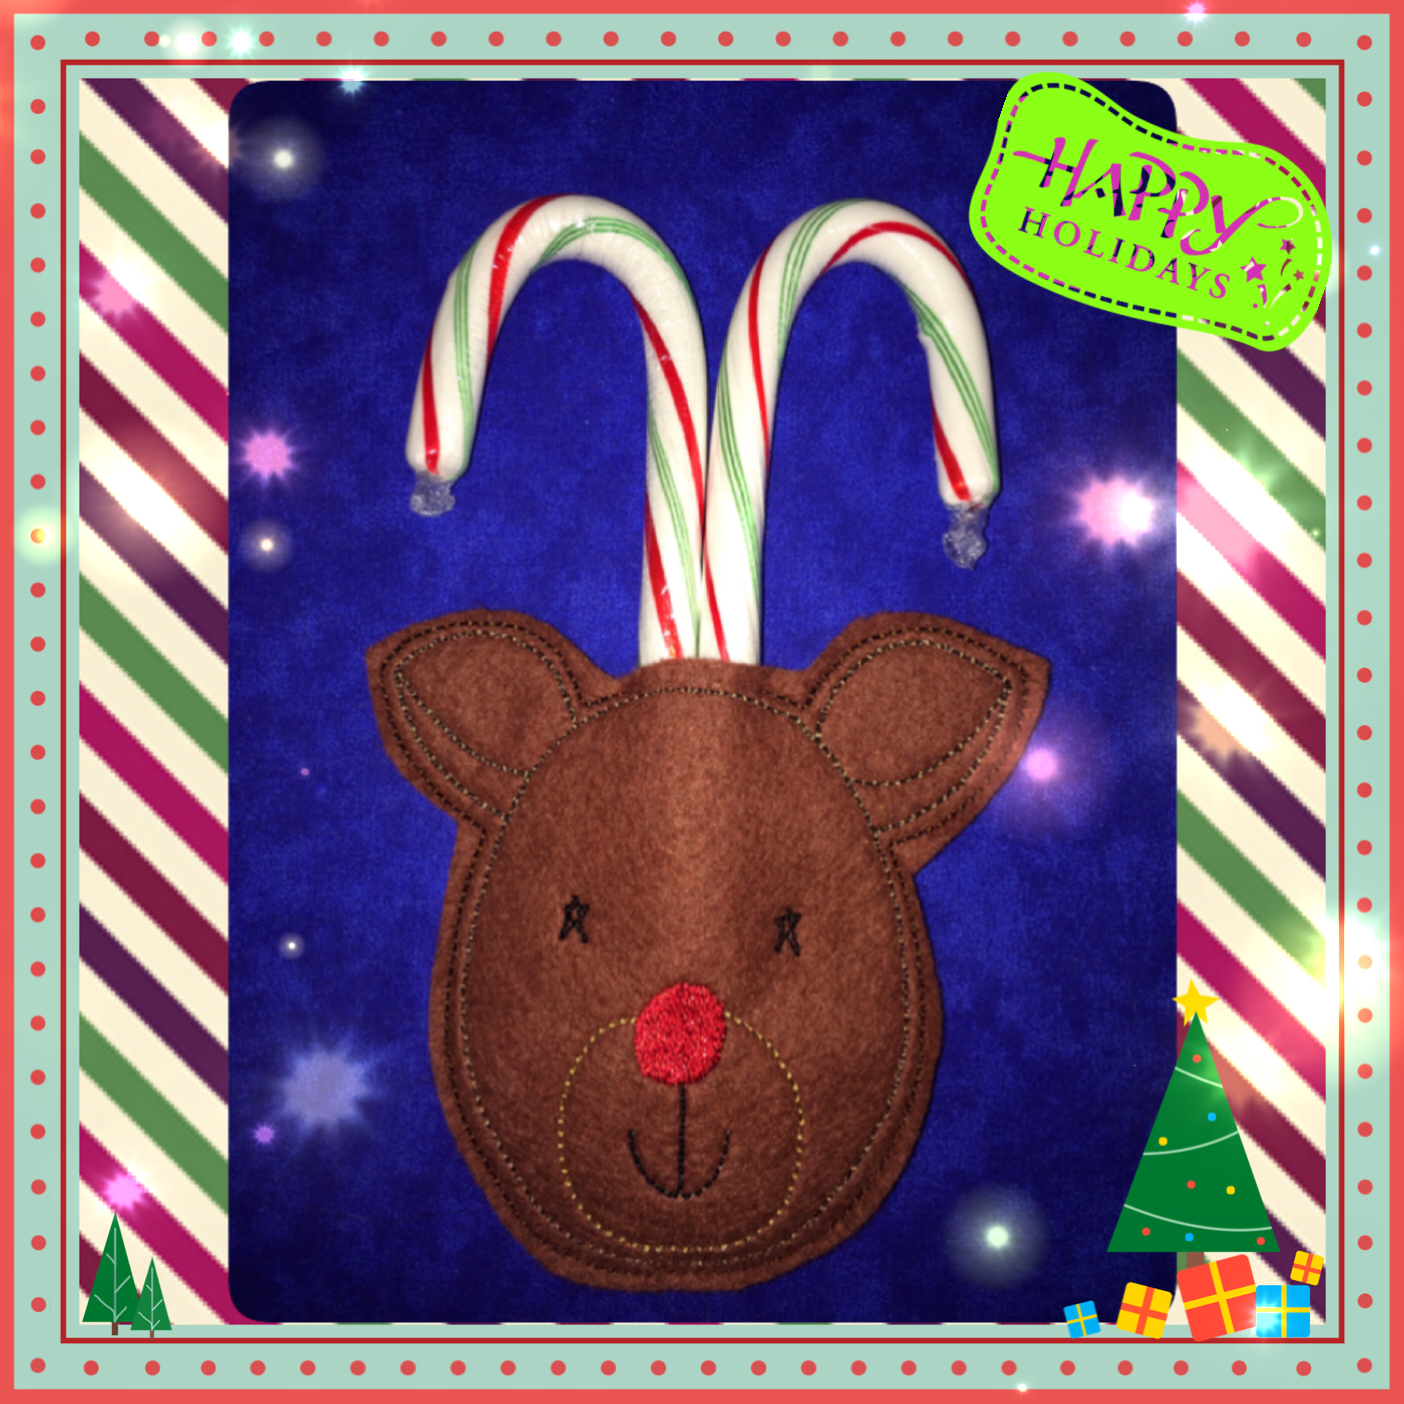 Reindeer Candy Cane Holder In The Hoop Single